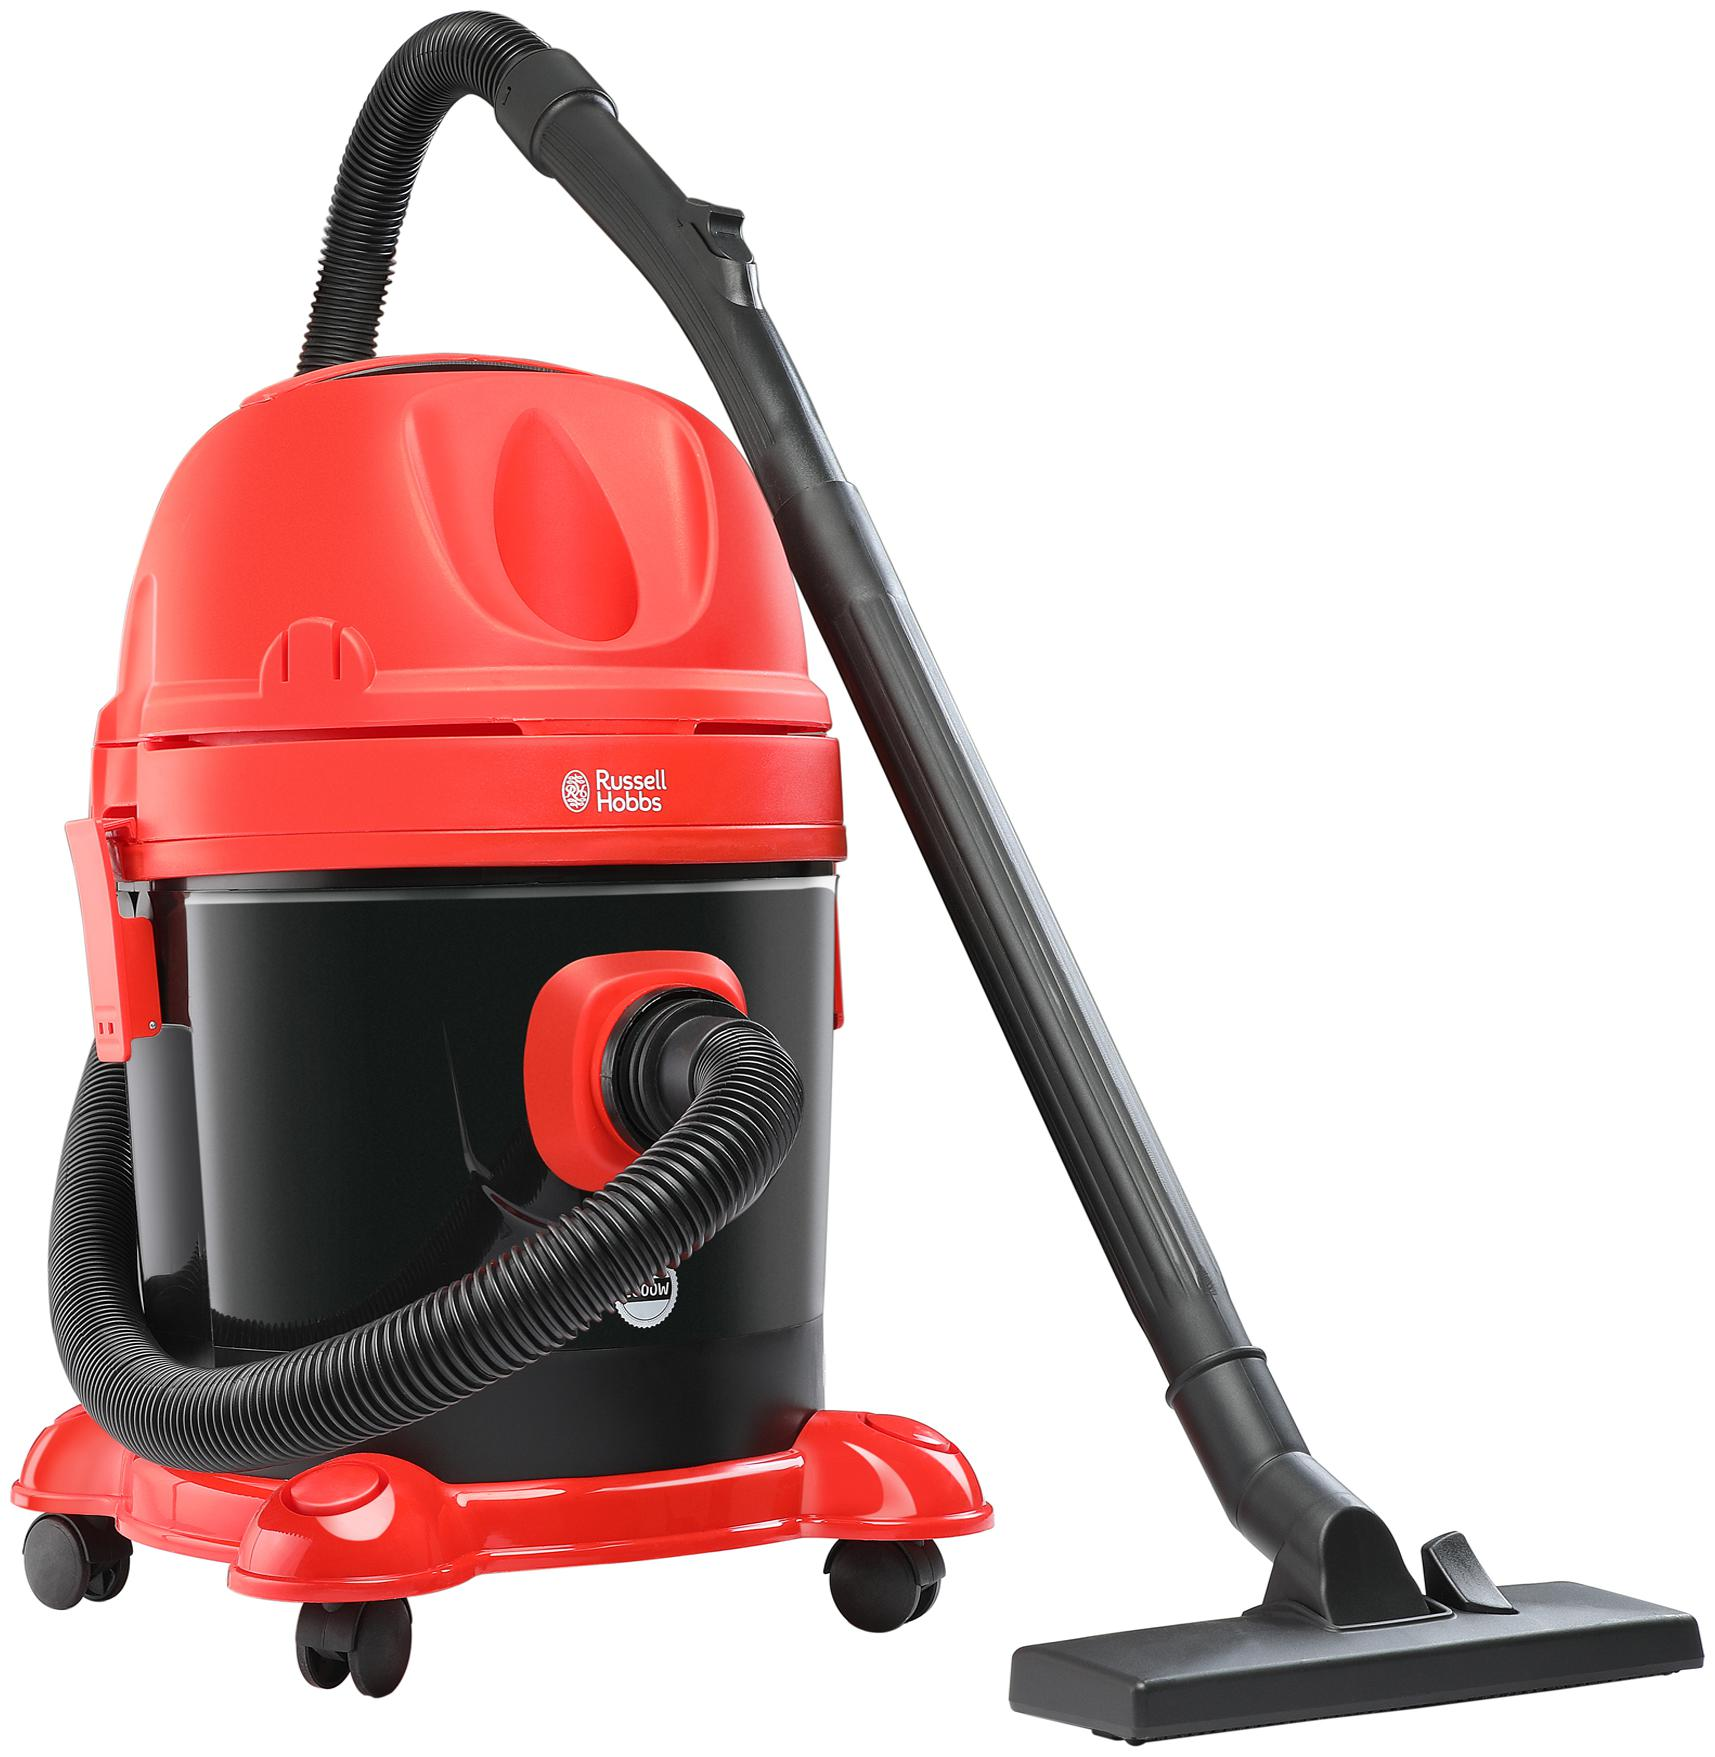 Russell Hobbs RVAC2000WD 2000 W Wet   Dry Cleaner  Red  by Gucci International